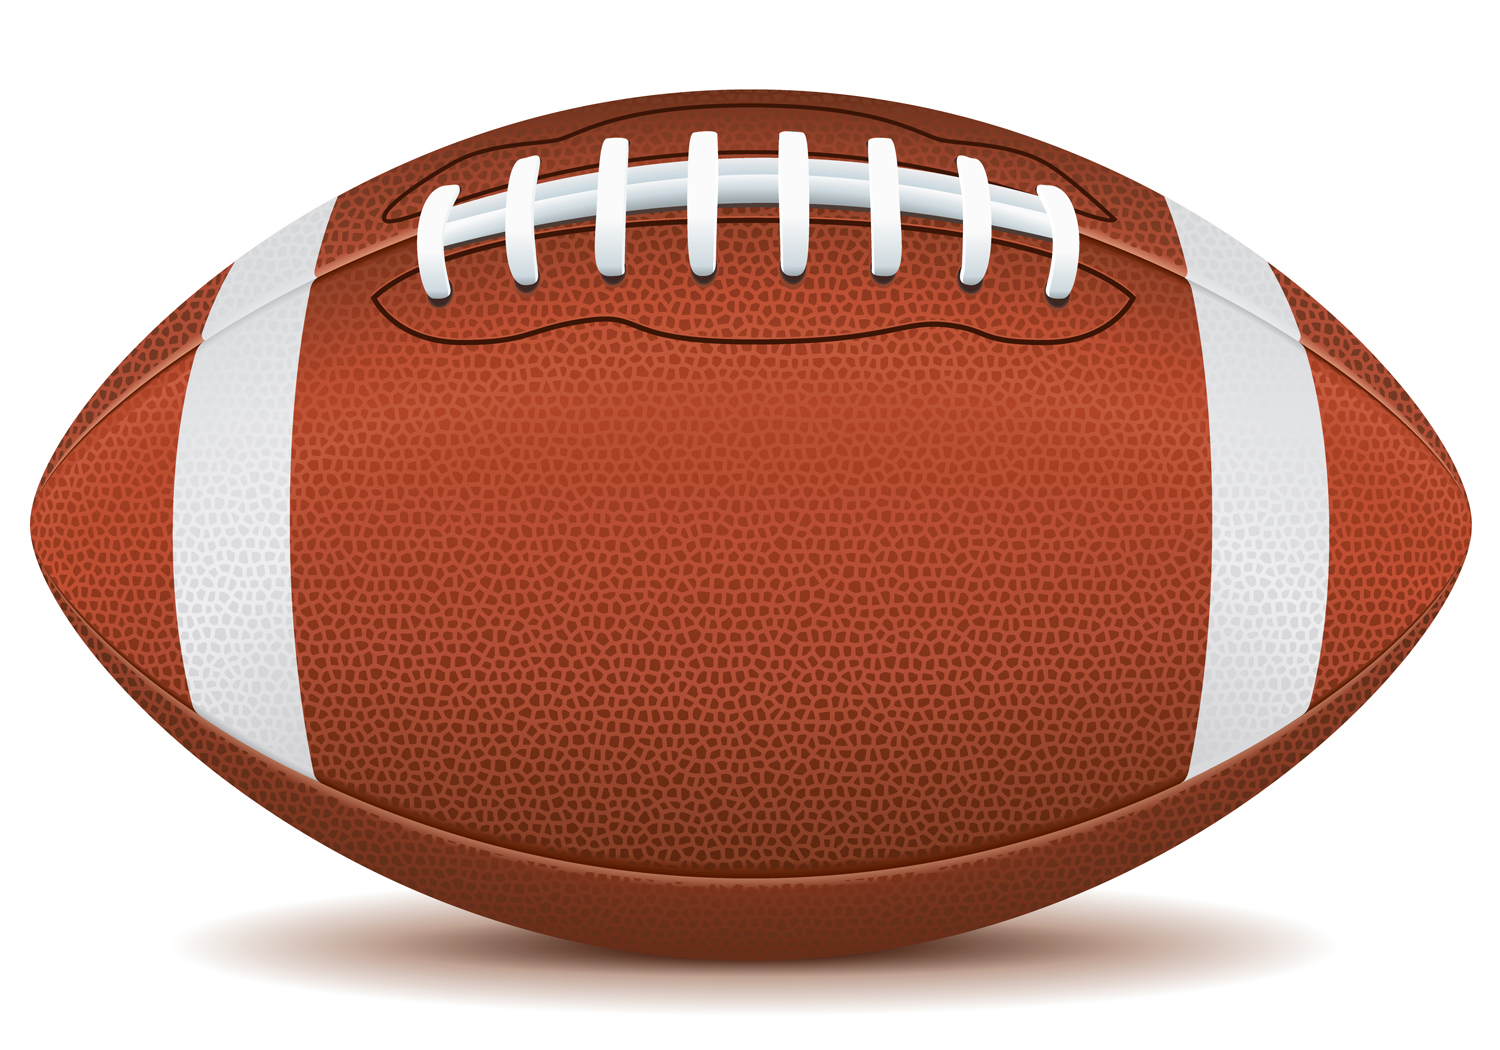 Football clipart clear background. Free download best